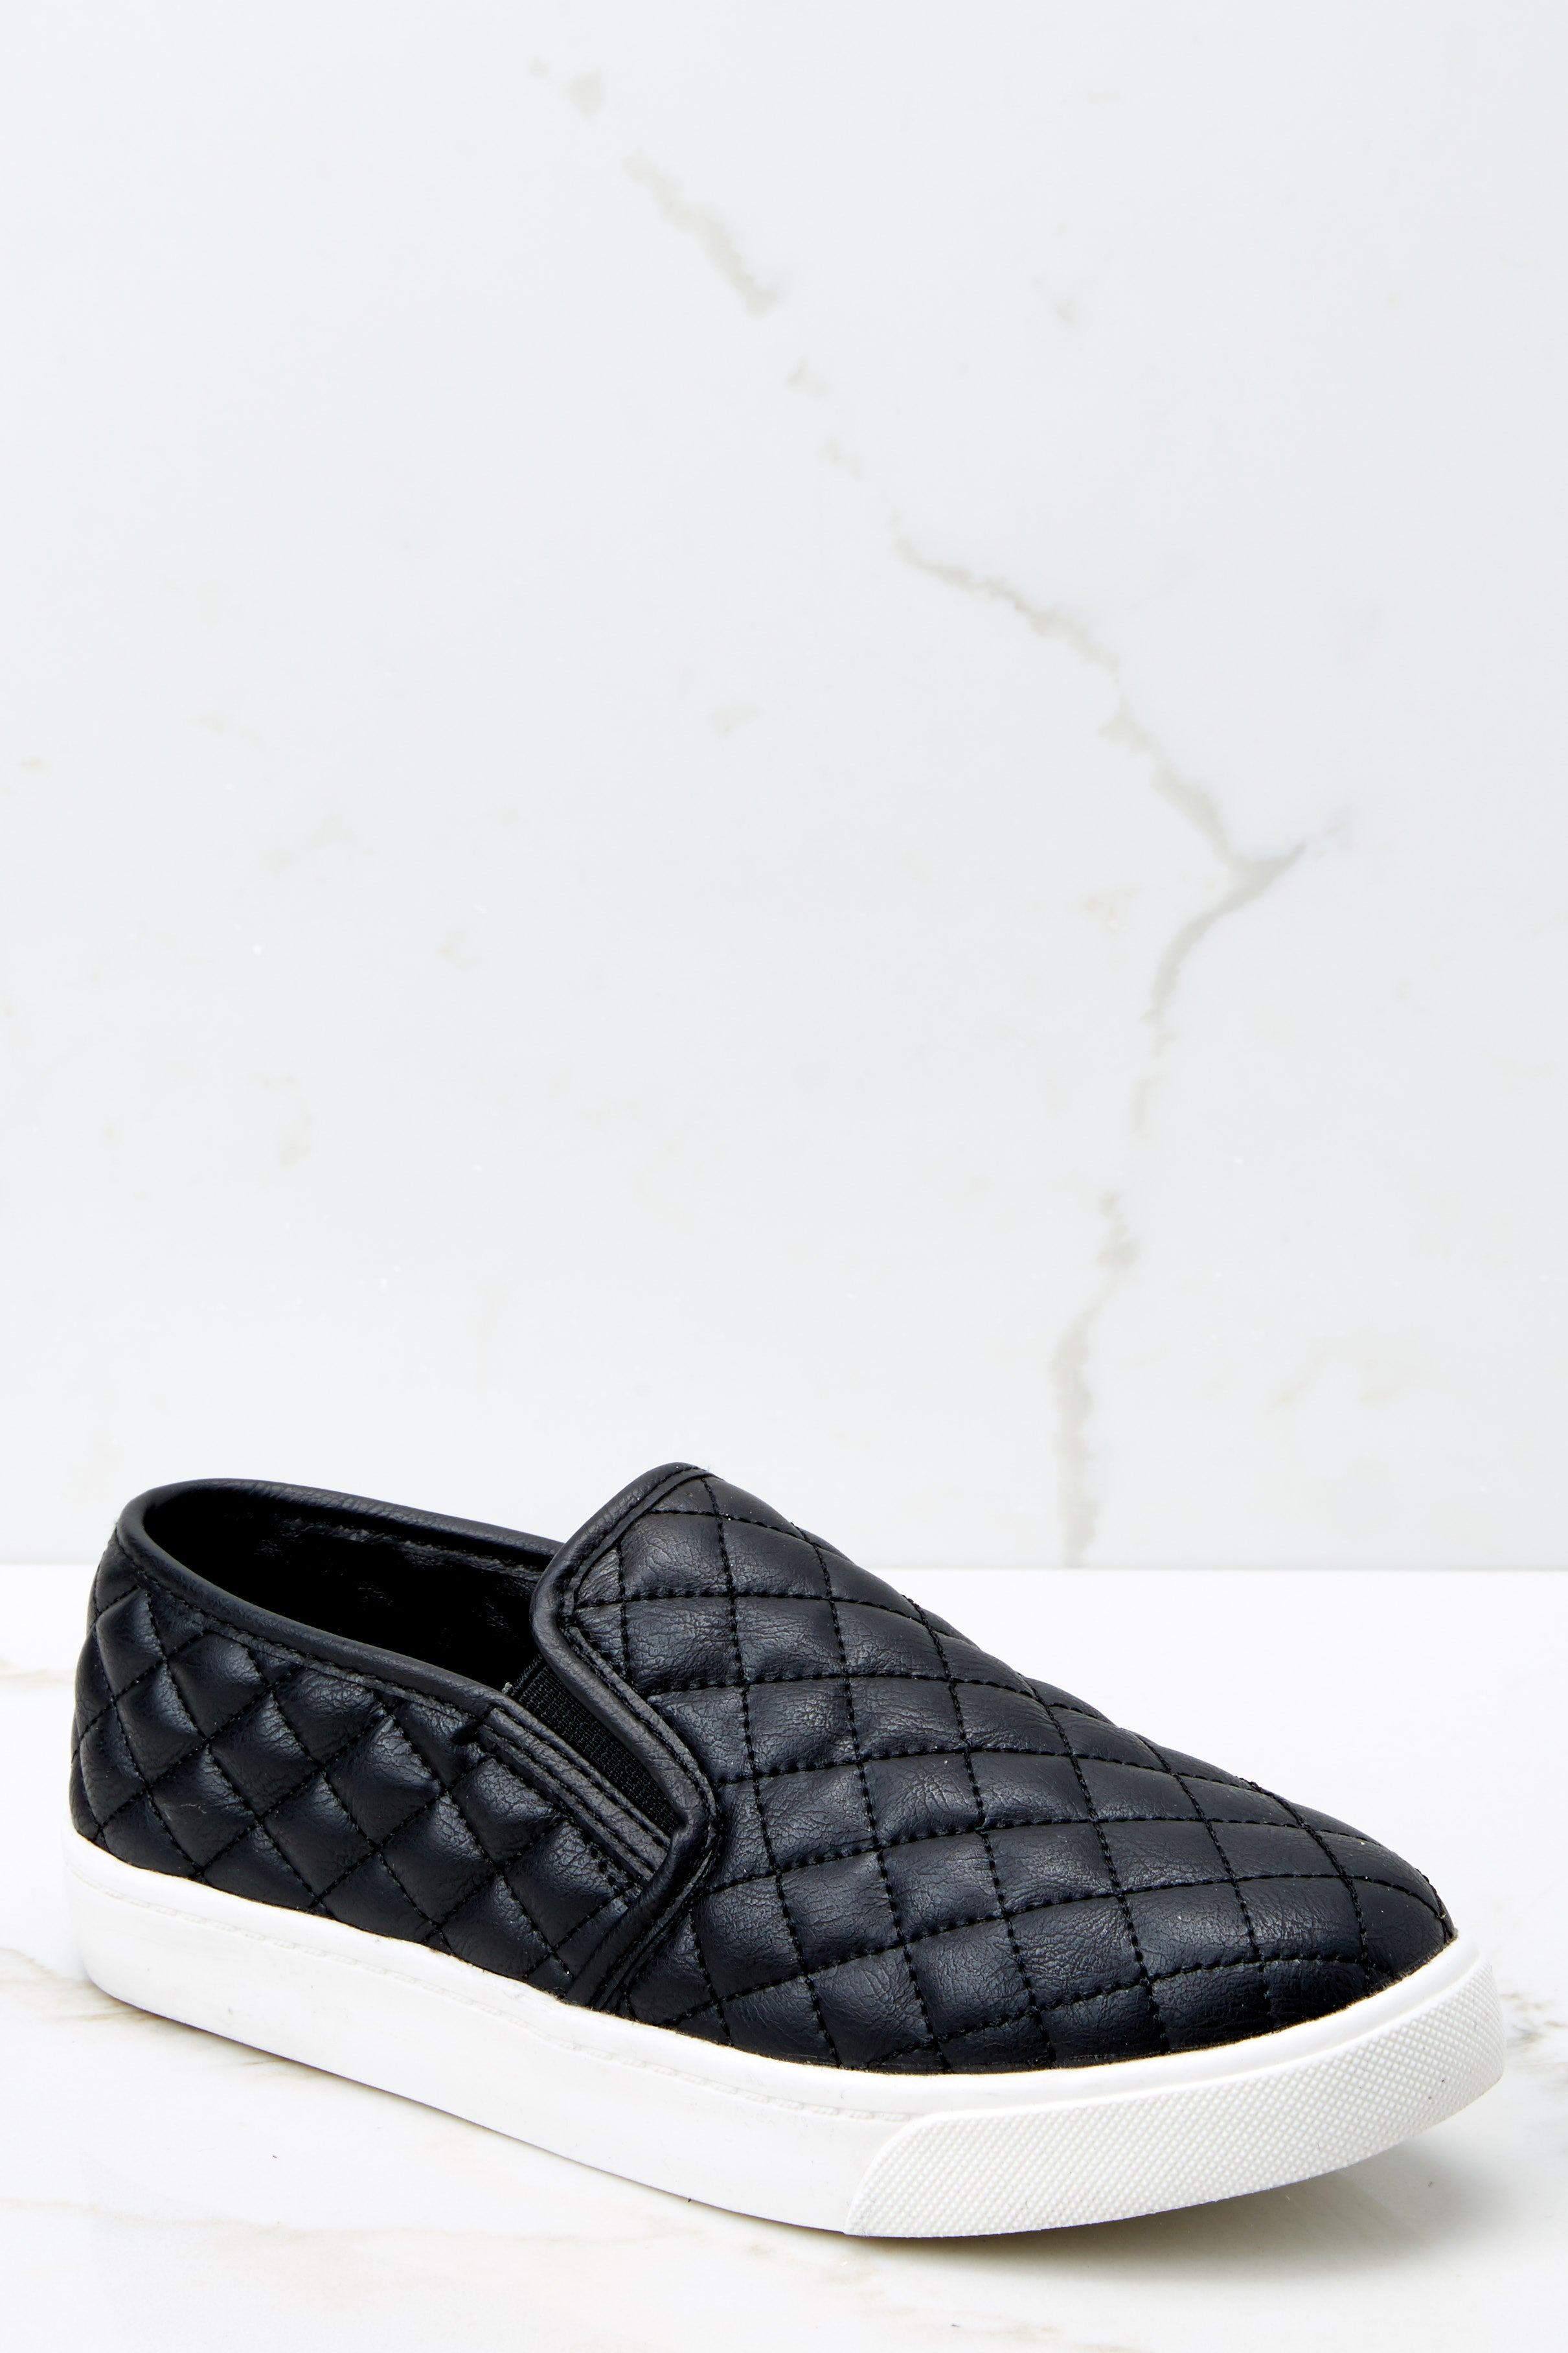 1 Passing Expectations Black Slip On Sneakers at reddressboutique.com